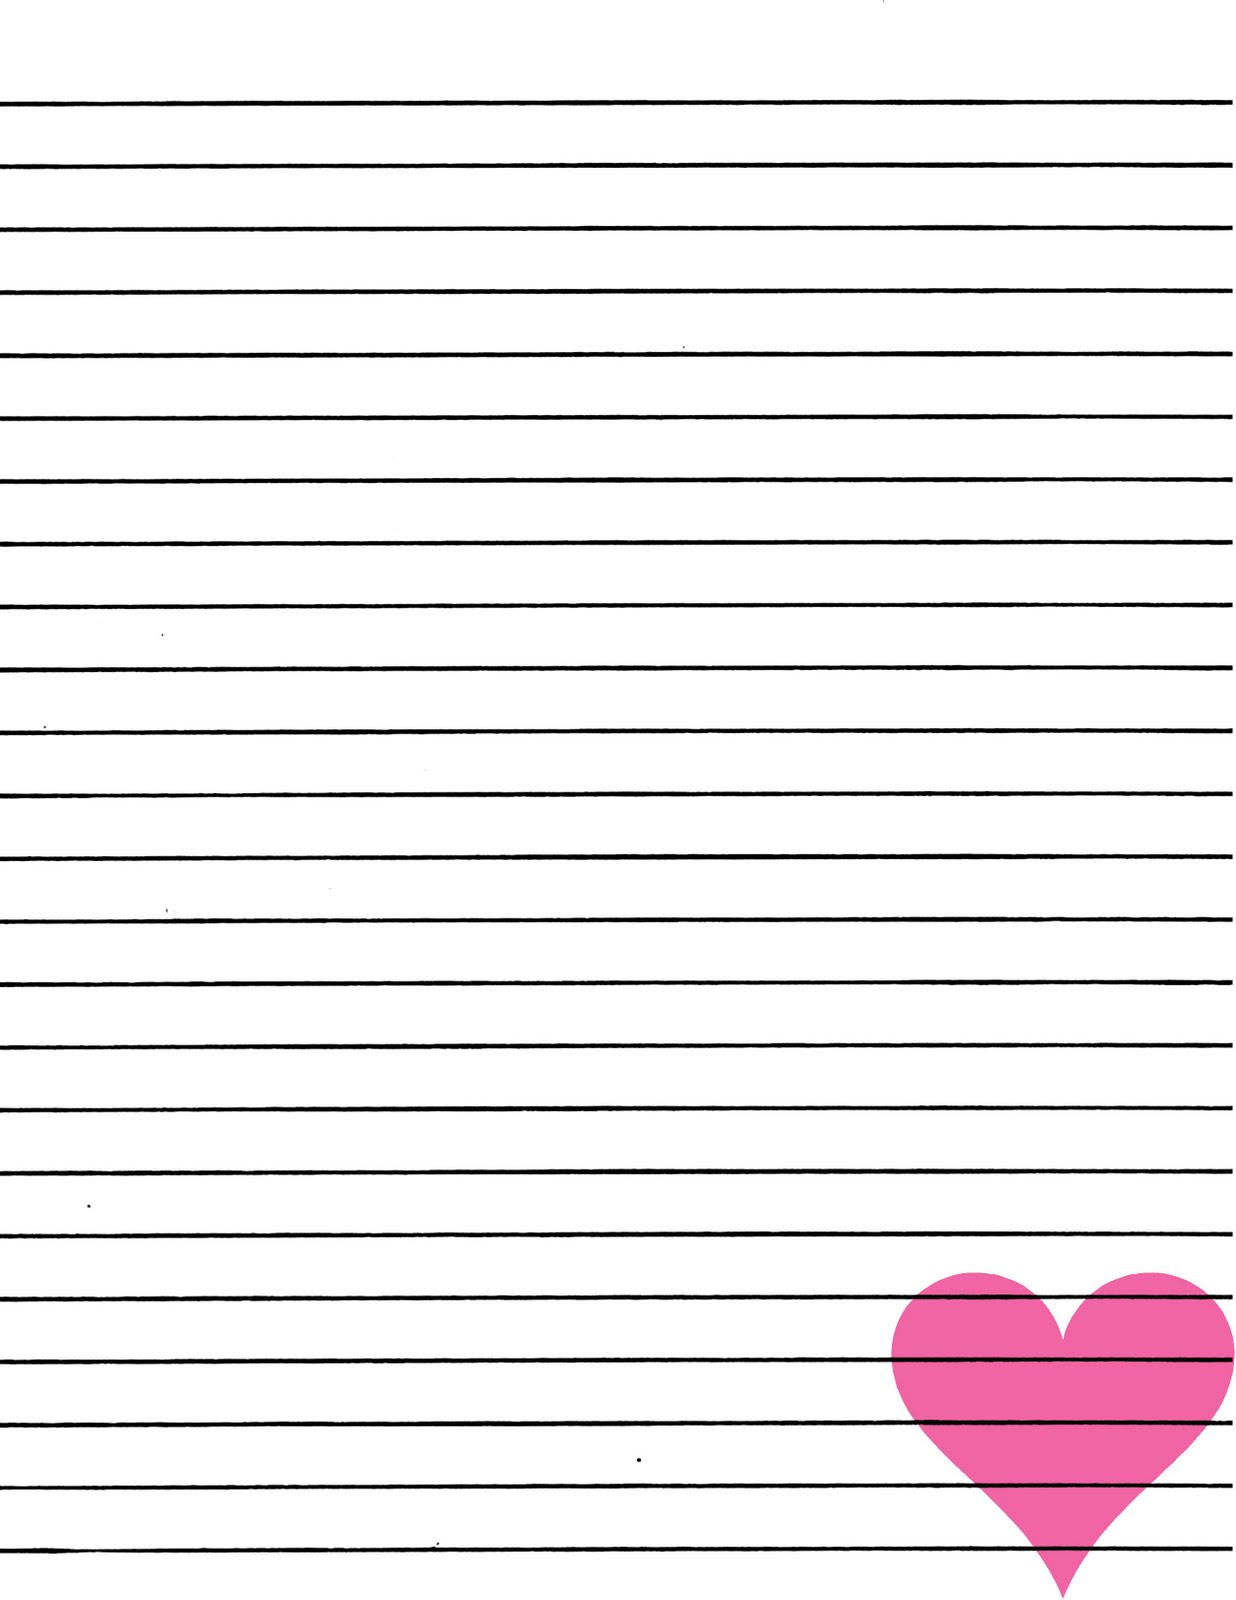 Just Smashing Paper FREEBIE Pink heart lined paper printable